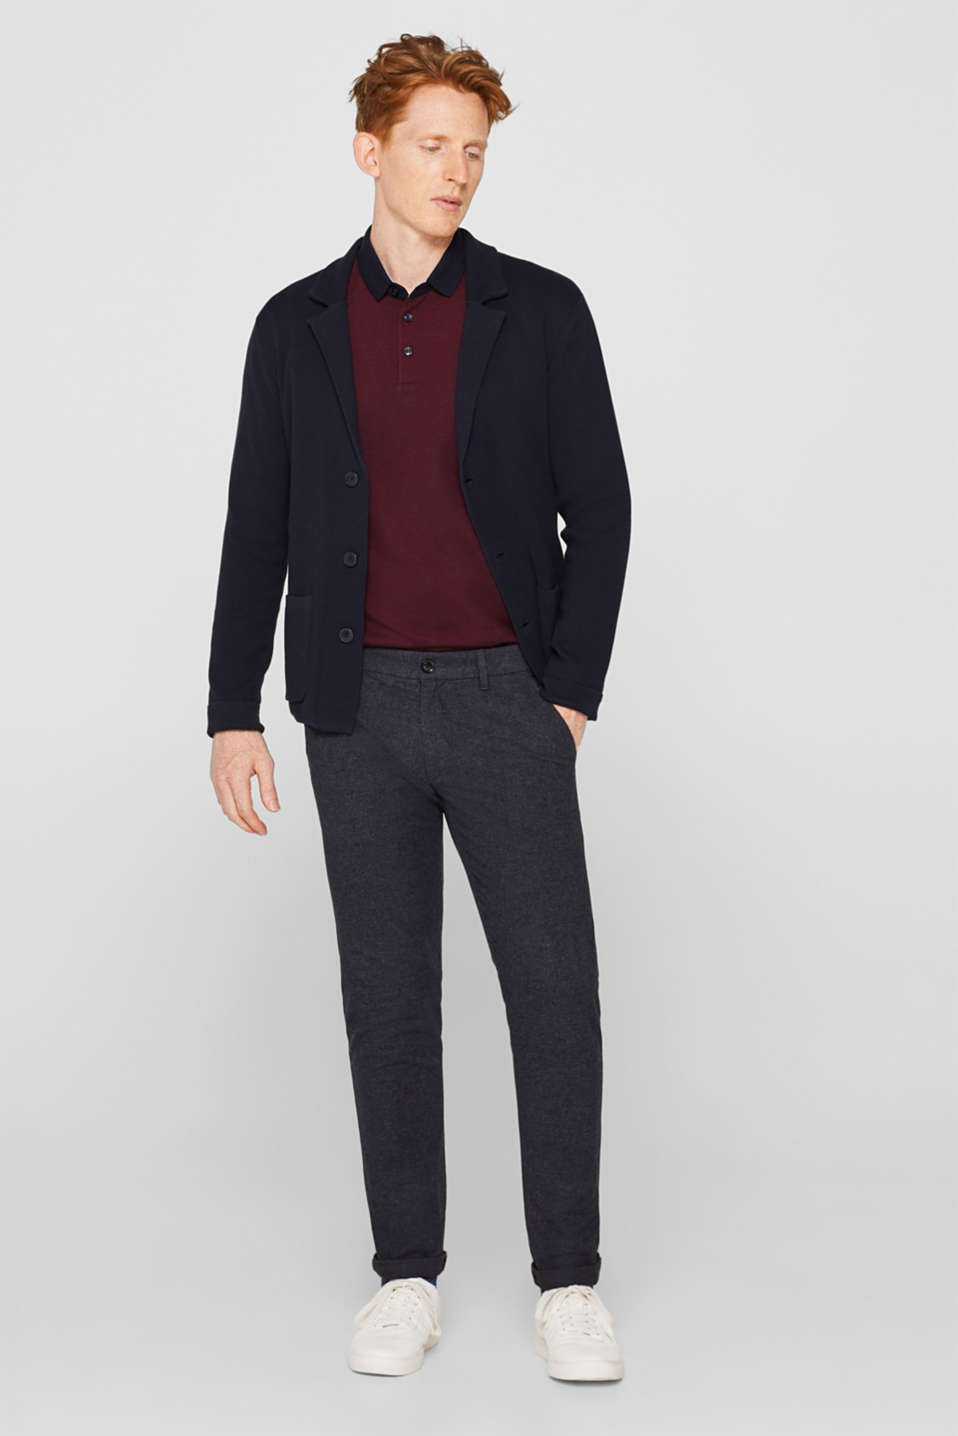 Pants woven Slim fit, NAVY, detail image number 1